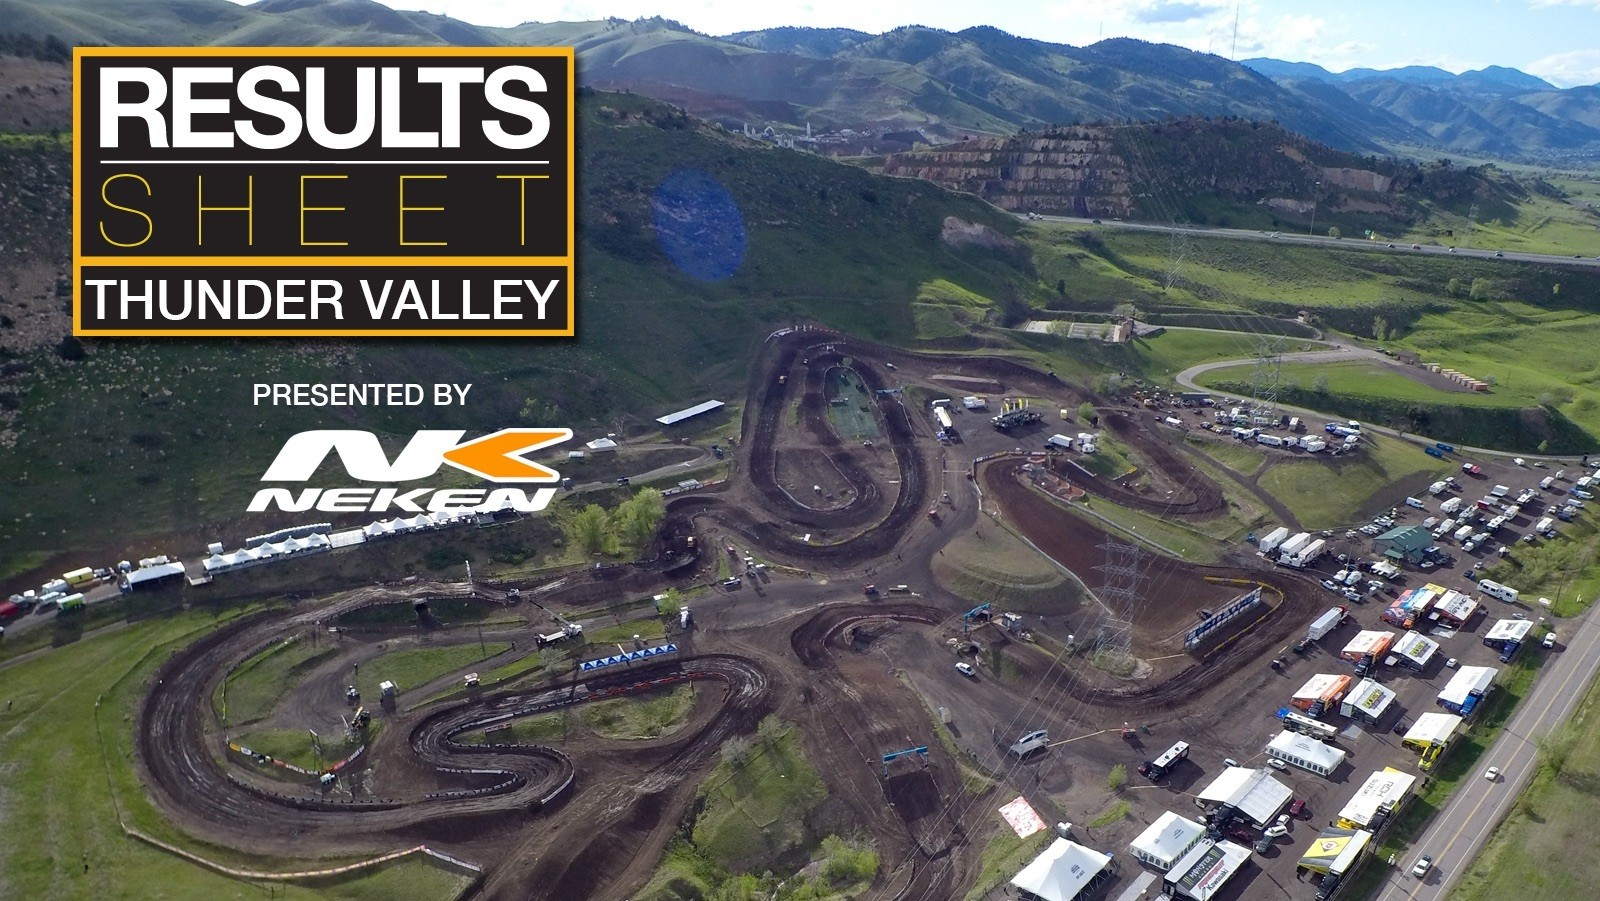 Results Sheet: Thunder Valley